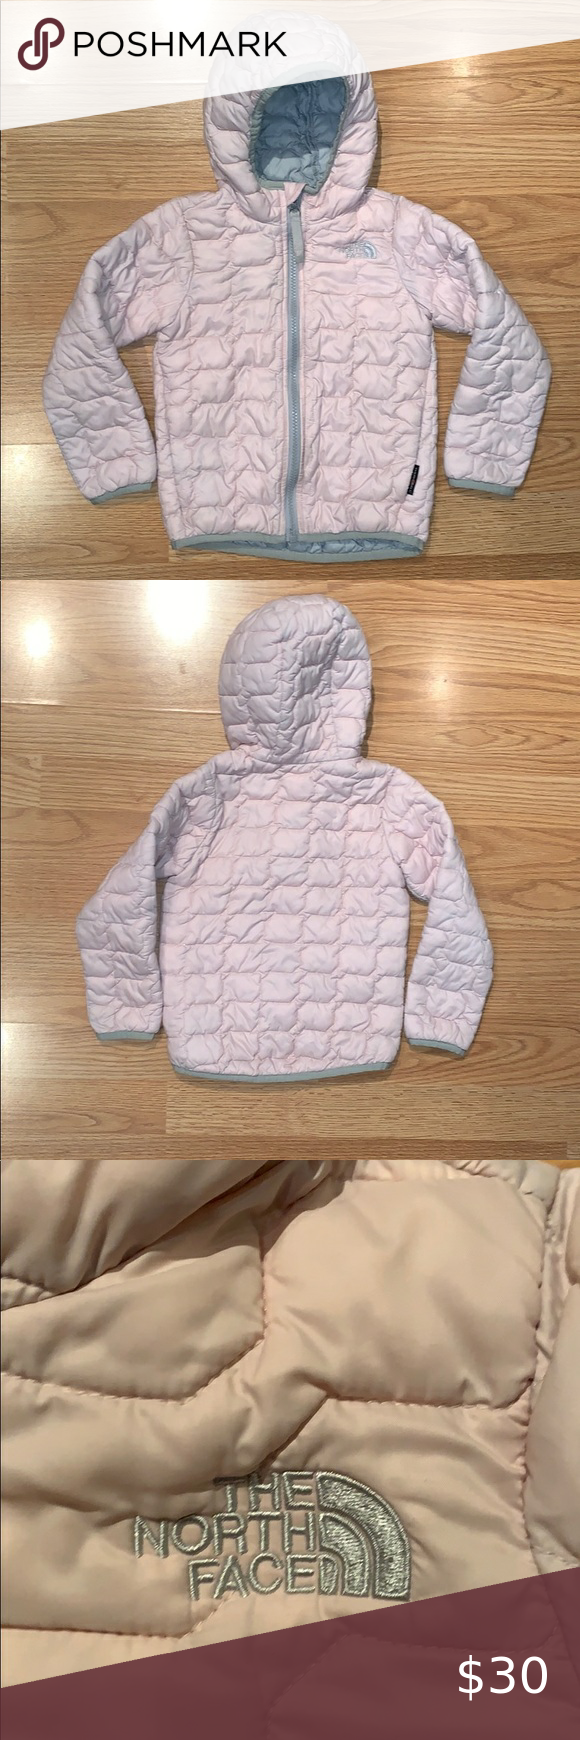 North Face Pink Thermoball Quilted Jacket 4t North Face Thermoball Jacket In Size 4t Pale Pink Isn North Face Thermoball Jacket Quilted Jacket The North Face [ 1740 x 580 Pixel ]